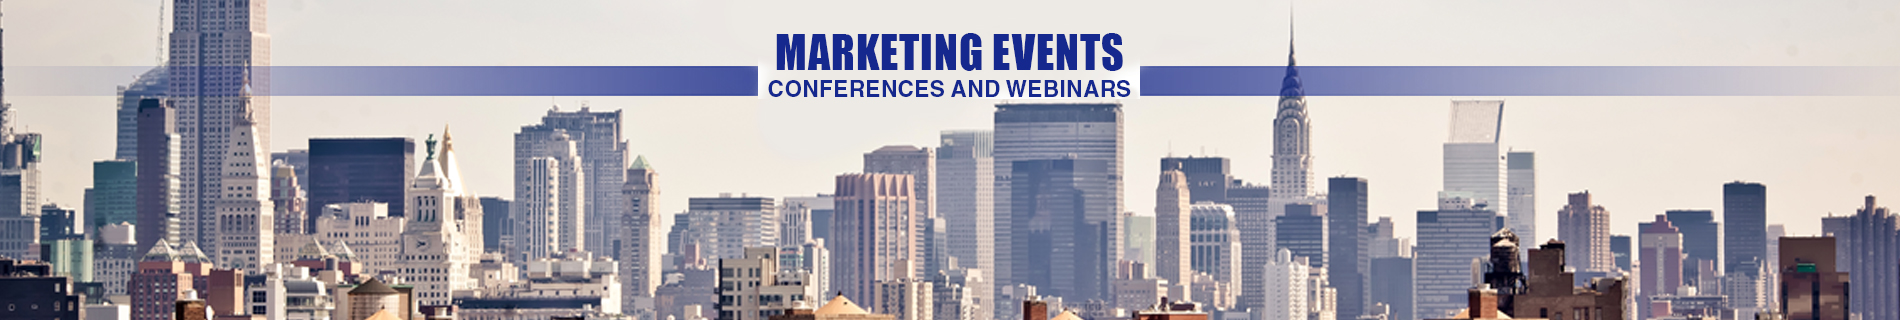 MARKETING-EVENT